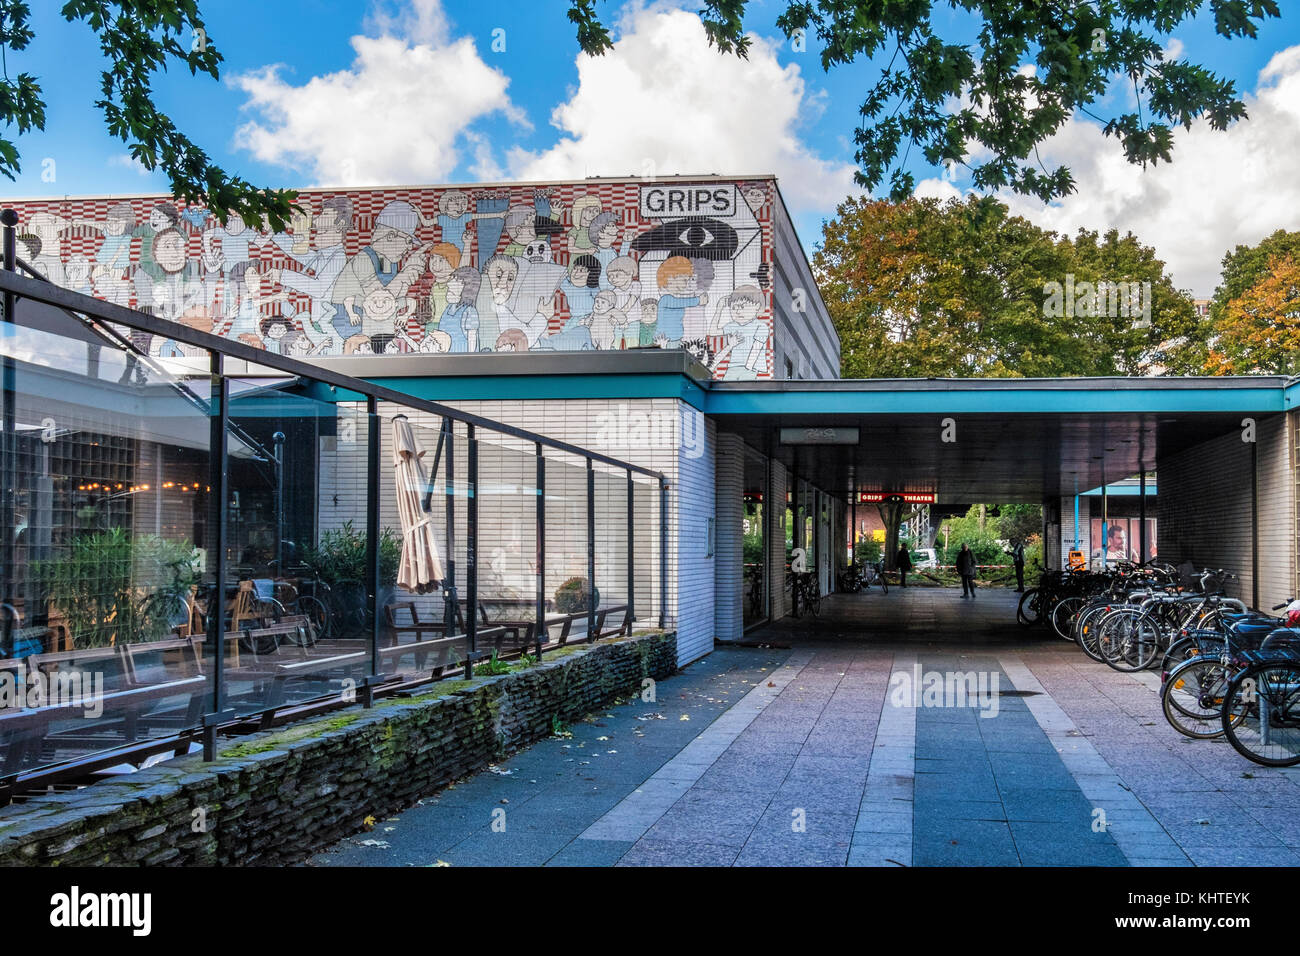 Berlin Hansaplatz. Grips Theater.Theatre for children & youth.Building exterior with mosaic of caricatures by - Stock Image